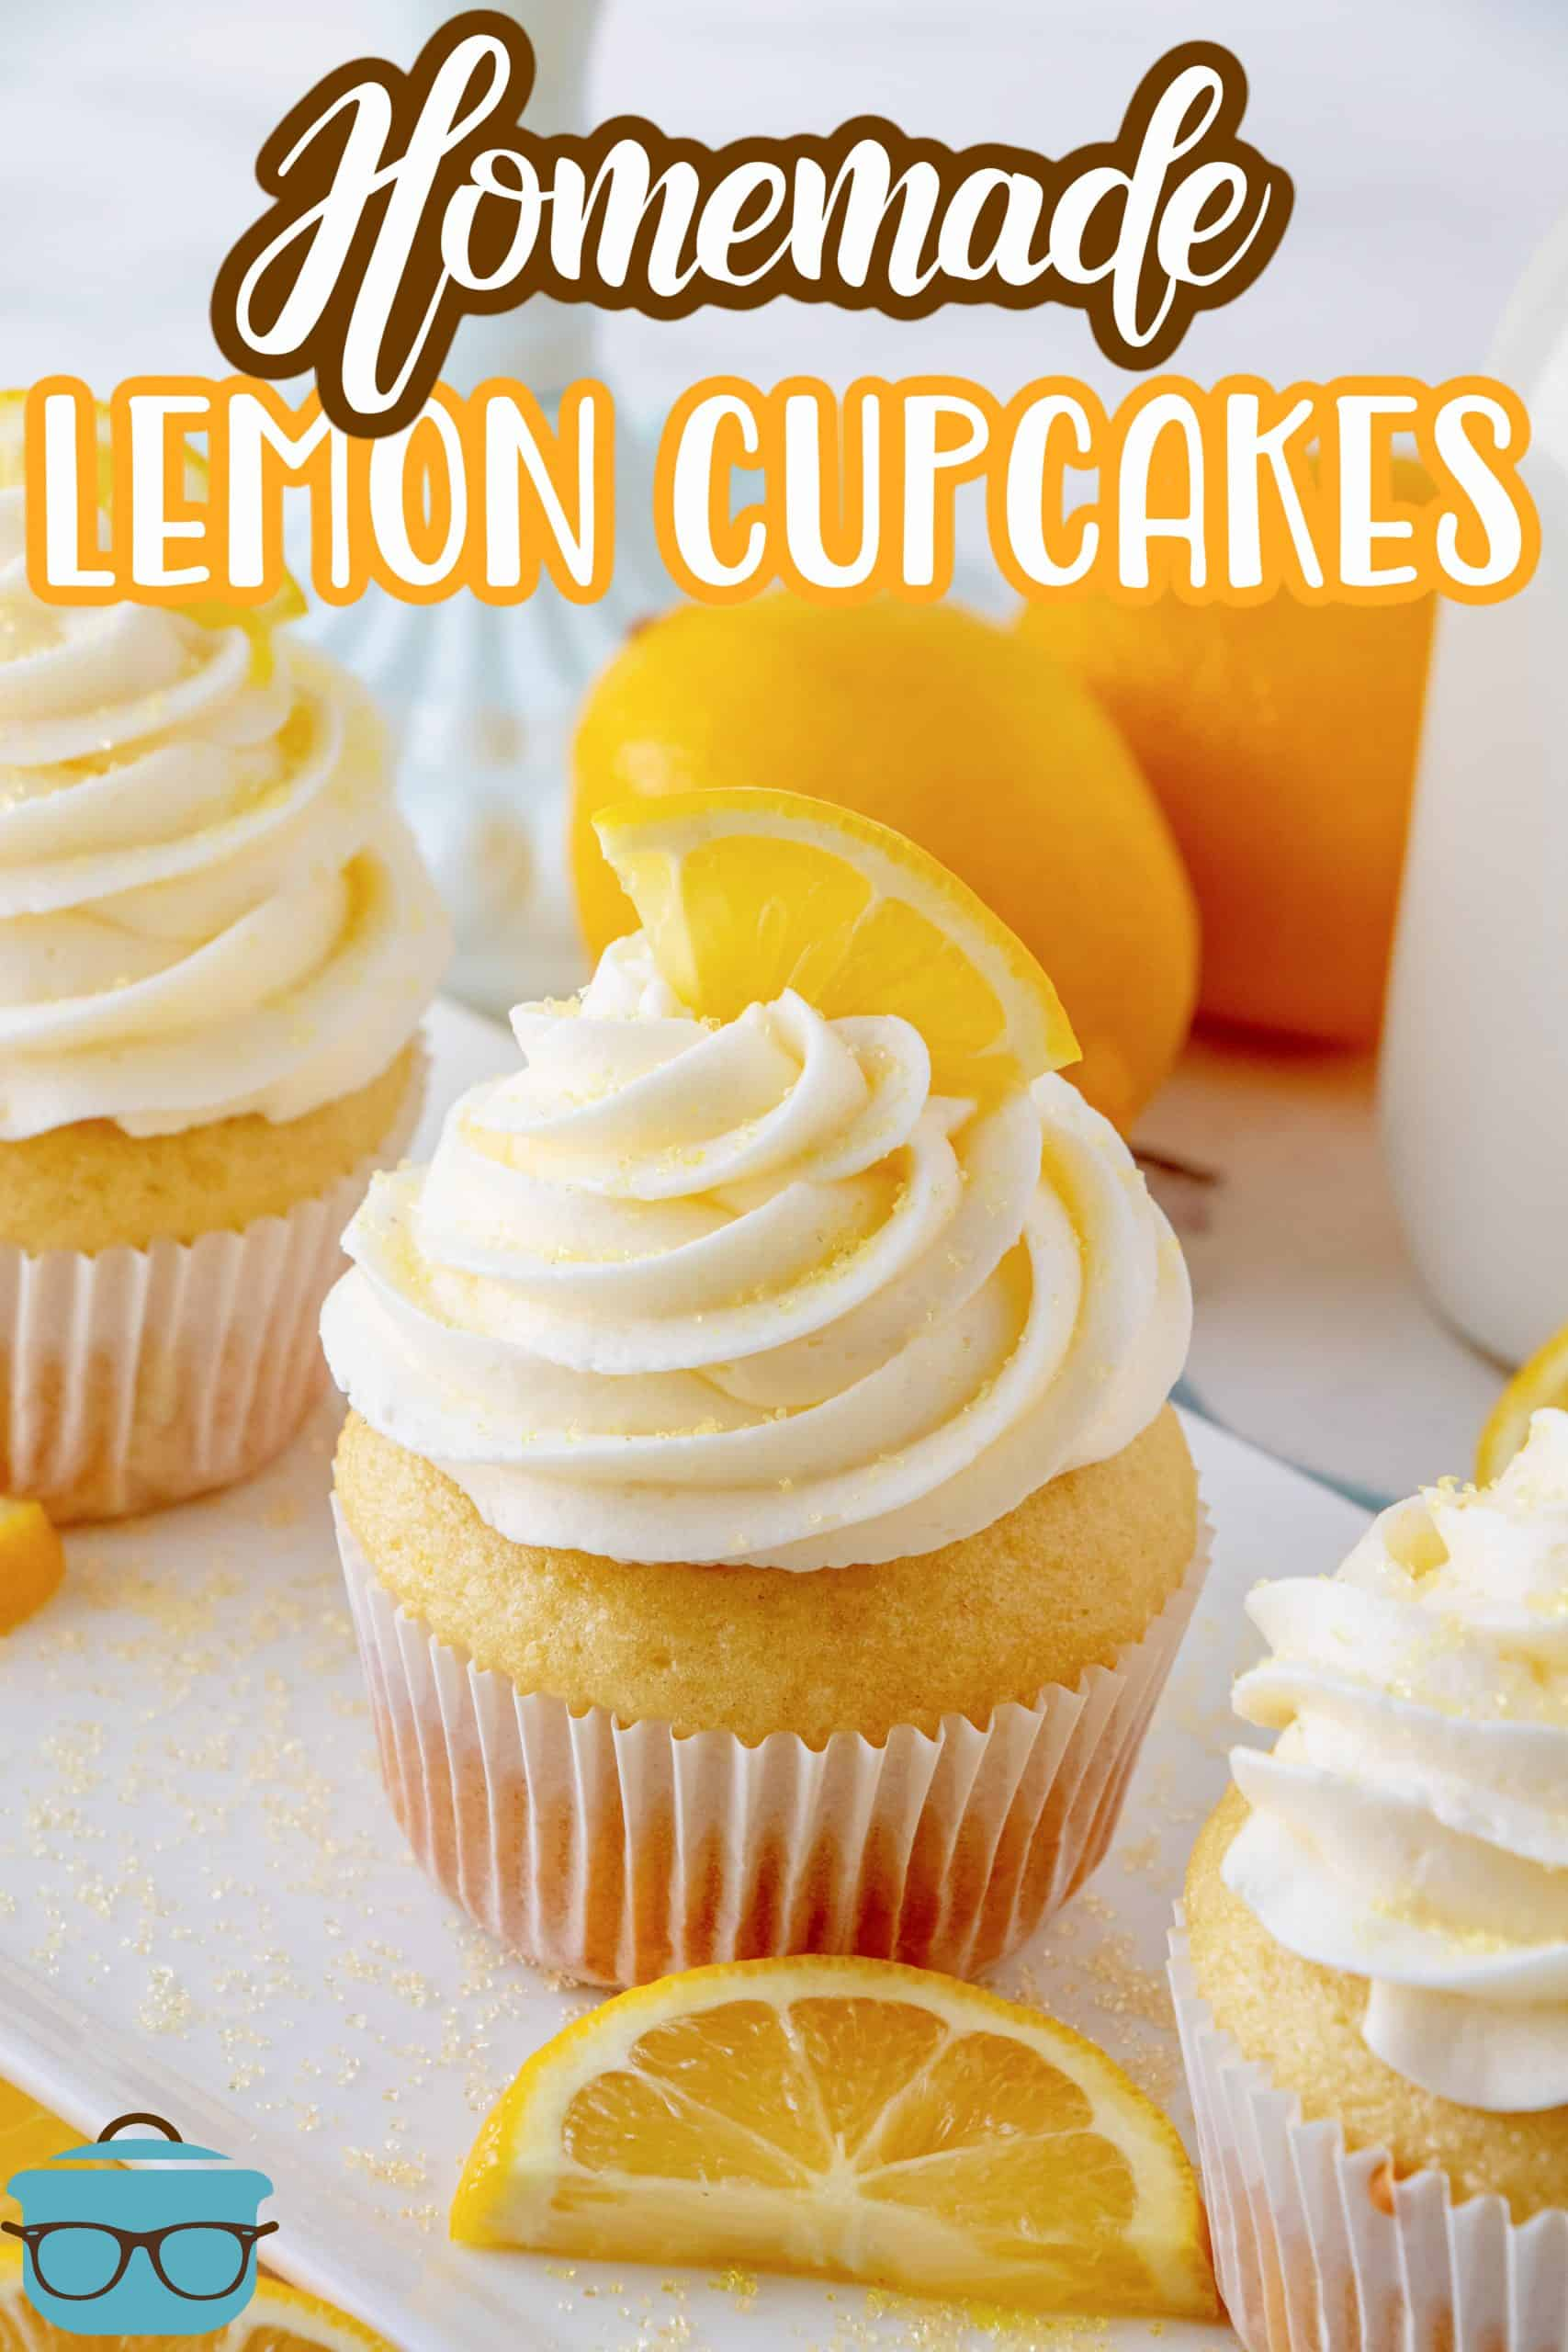 These Homemade Lemon Cupcakes are an easy homemade cupcake that have lemon in both the frosting and the cupcakes! Moist, flavorful and full of spring and summer flavors!